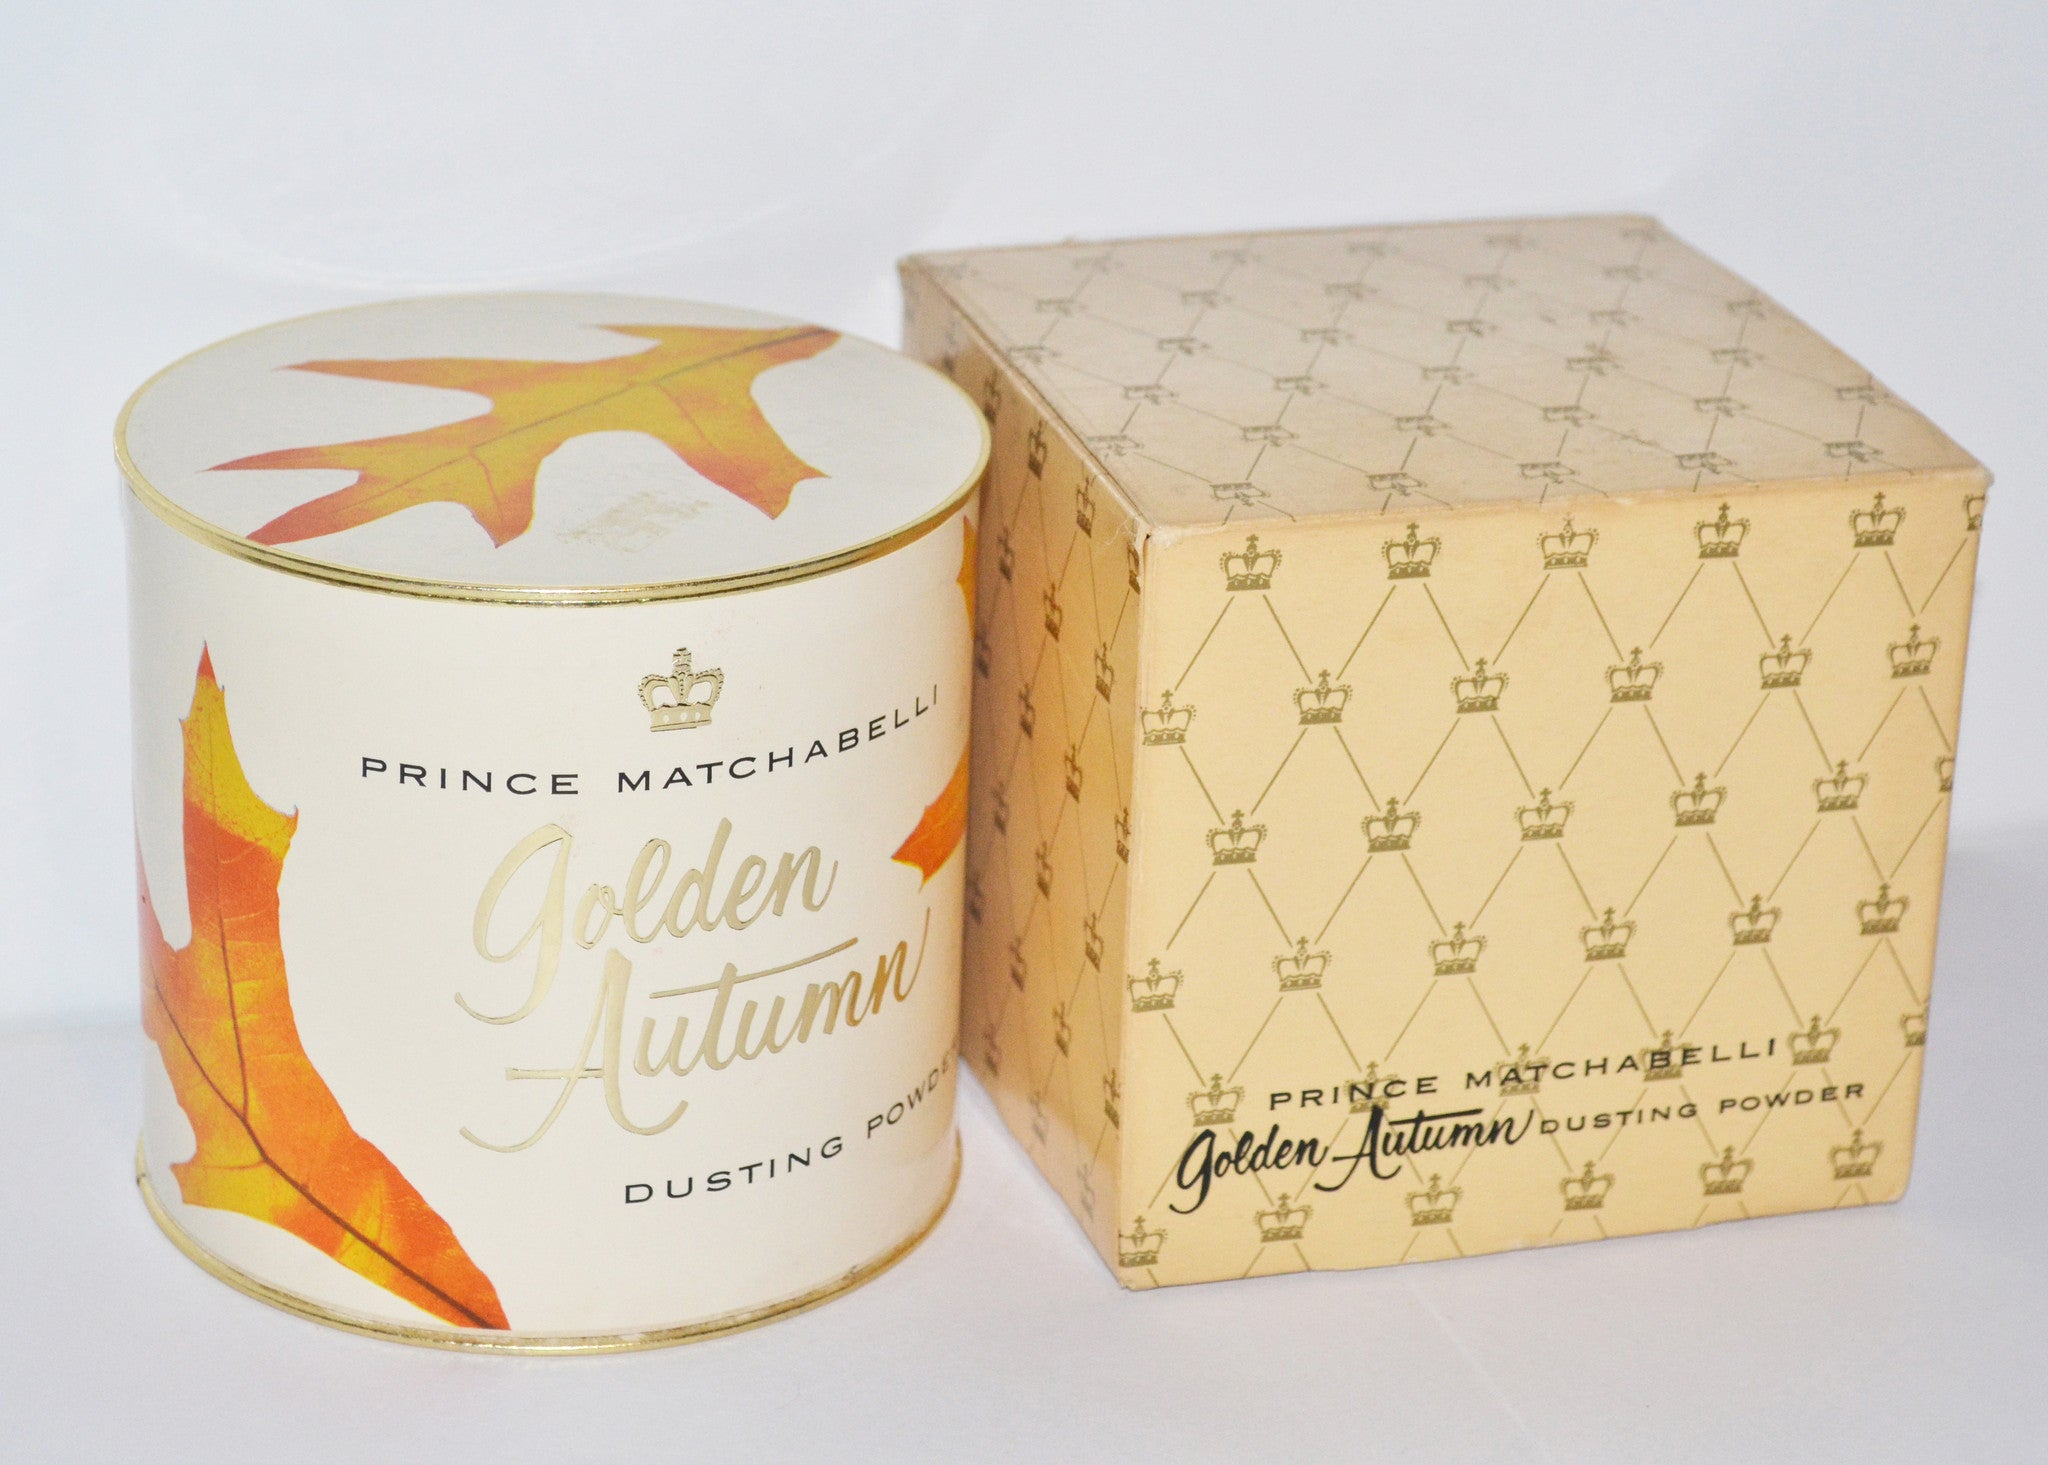 Prince Matchabelli Golden Autumn Perfume Dusting Powder